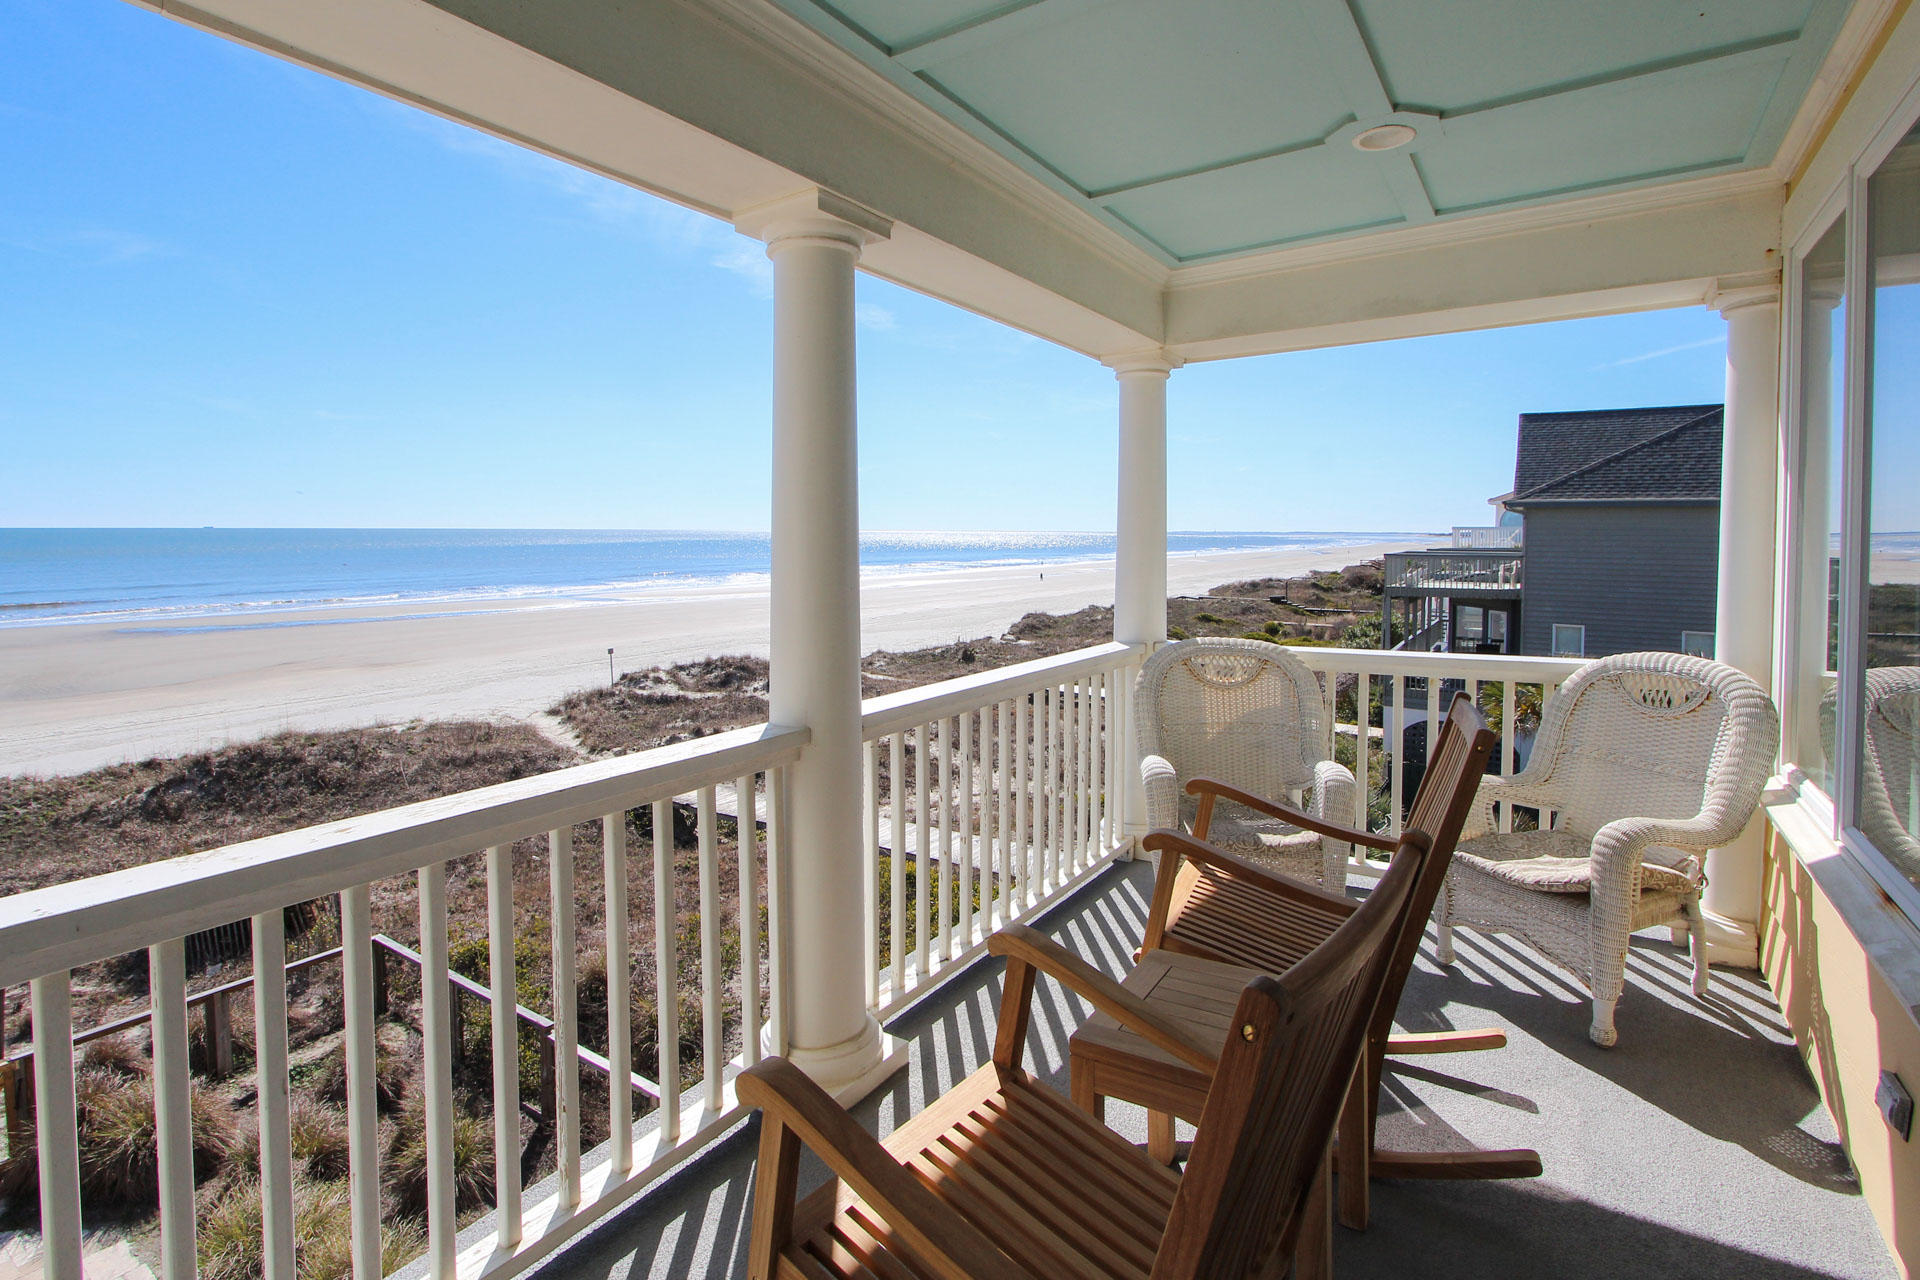 Isle of Palms Homes For Sale - 810 Ocean, Isle of Palms, SC - 1